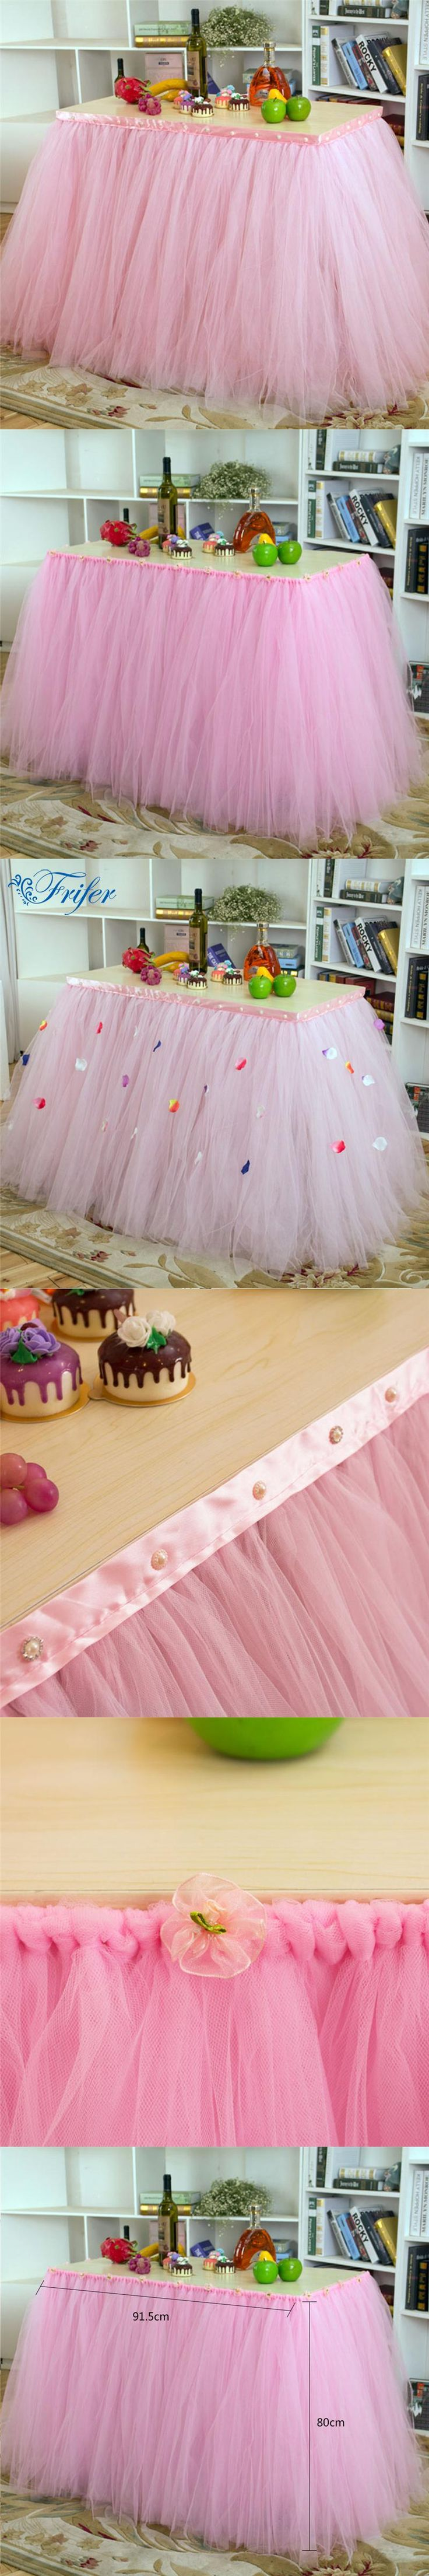 High Quality Parties Tulle Table Skirt Baby Shower Decor Fantastic Wonderland Decorative Table Skirting for Wedding 91.5*80cm